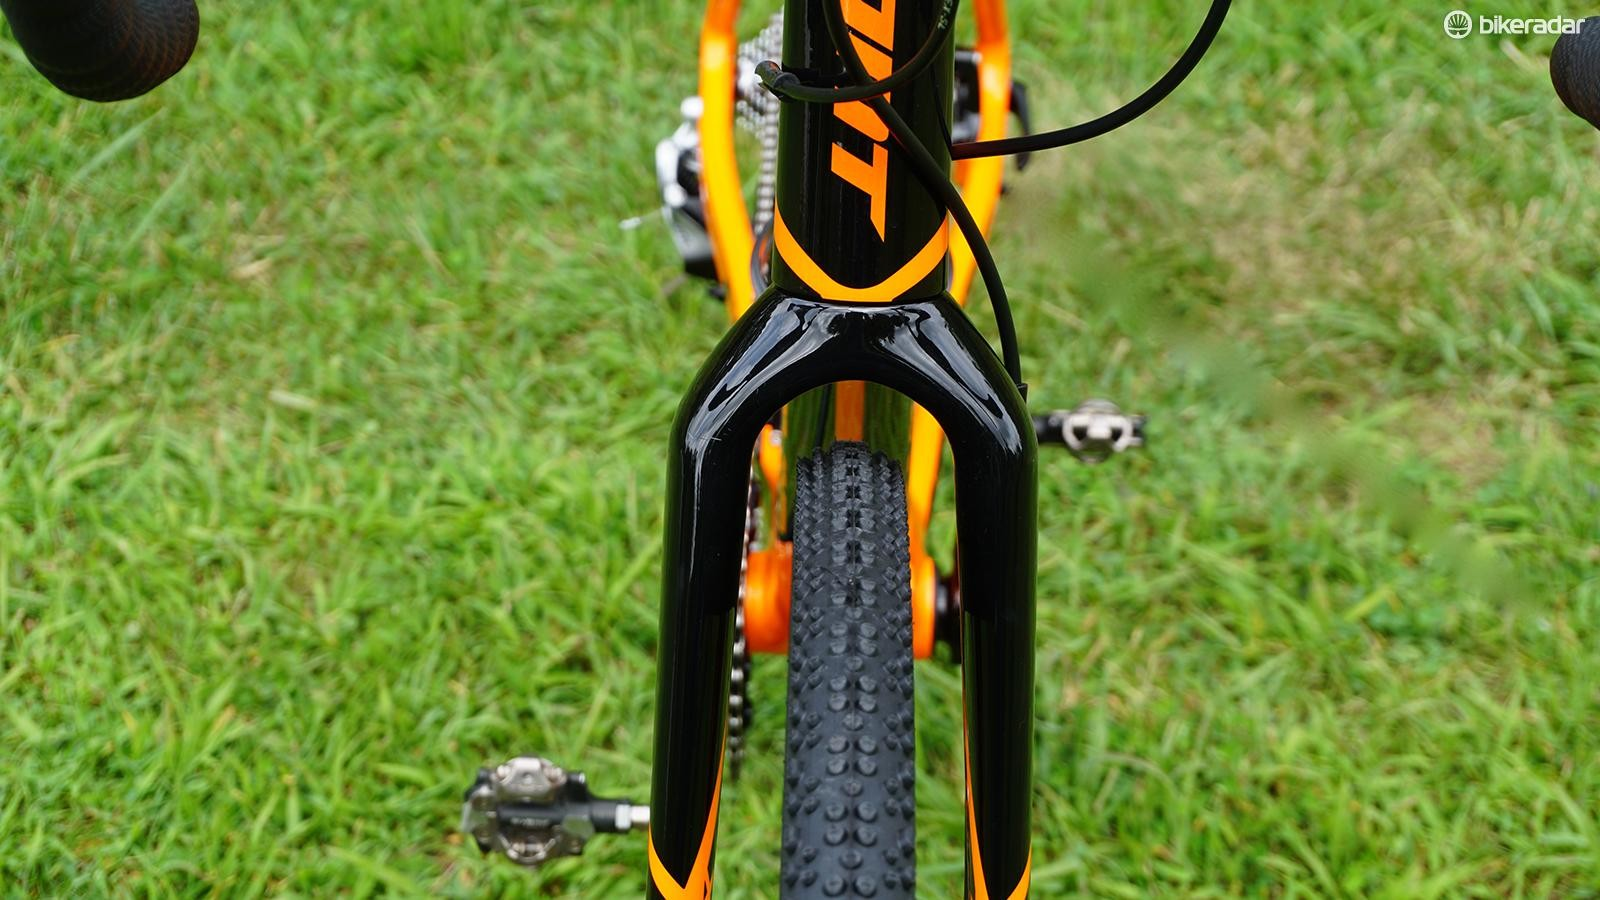 Those 33mm Schwalbe X-One tires have plenty of room to breathe up front